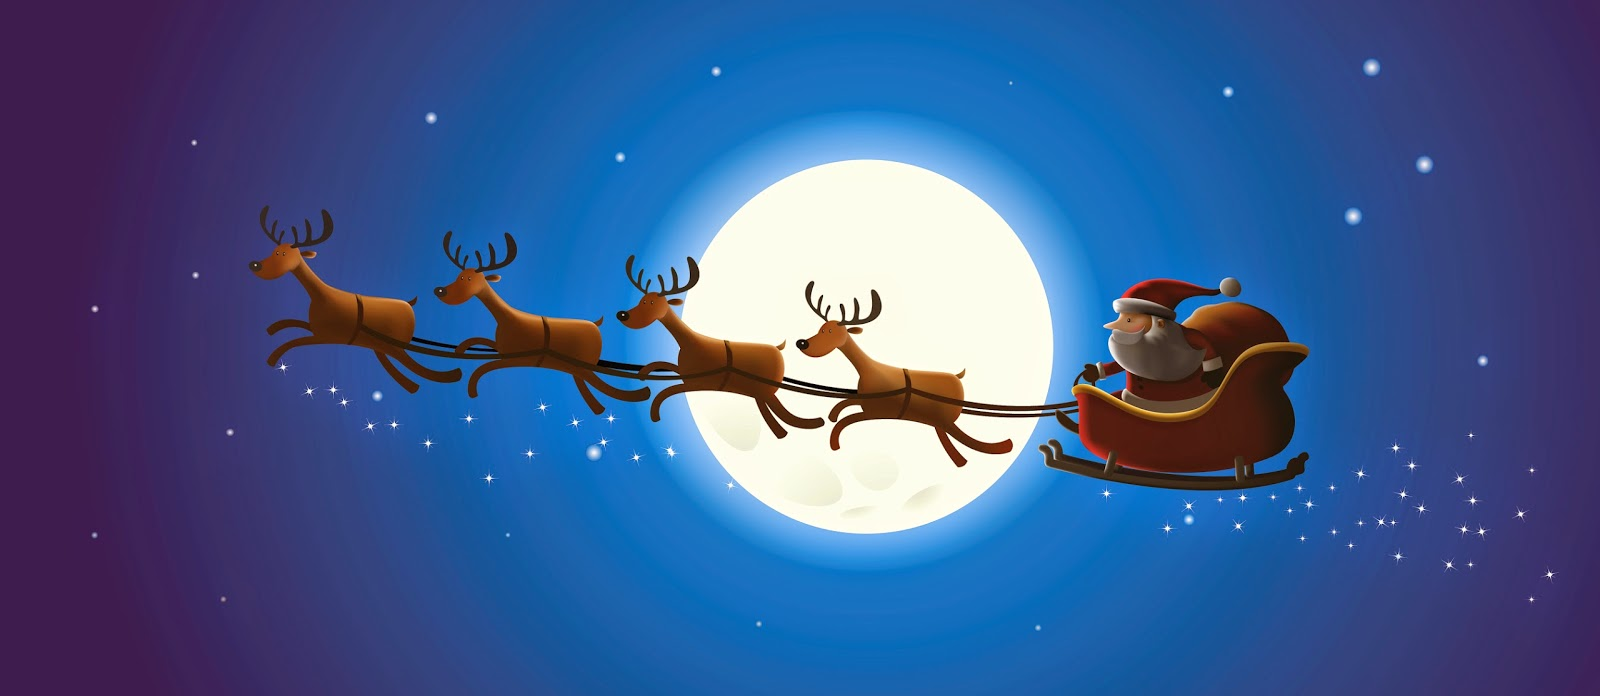 santa-claus-riding-his-sleigh-in-sky-with-moon-background-cartoon-drawing-image.jpg